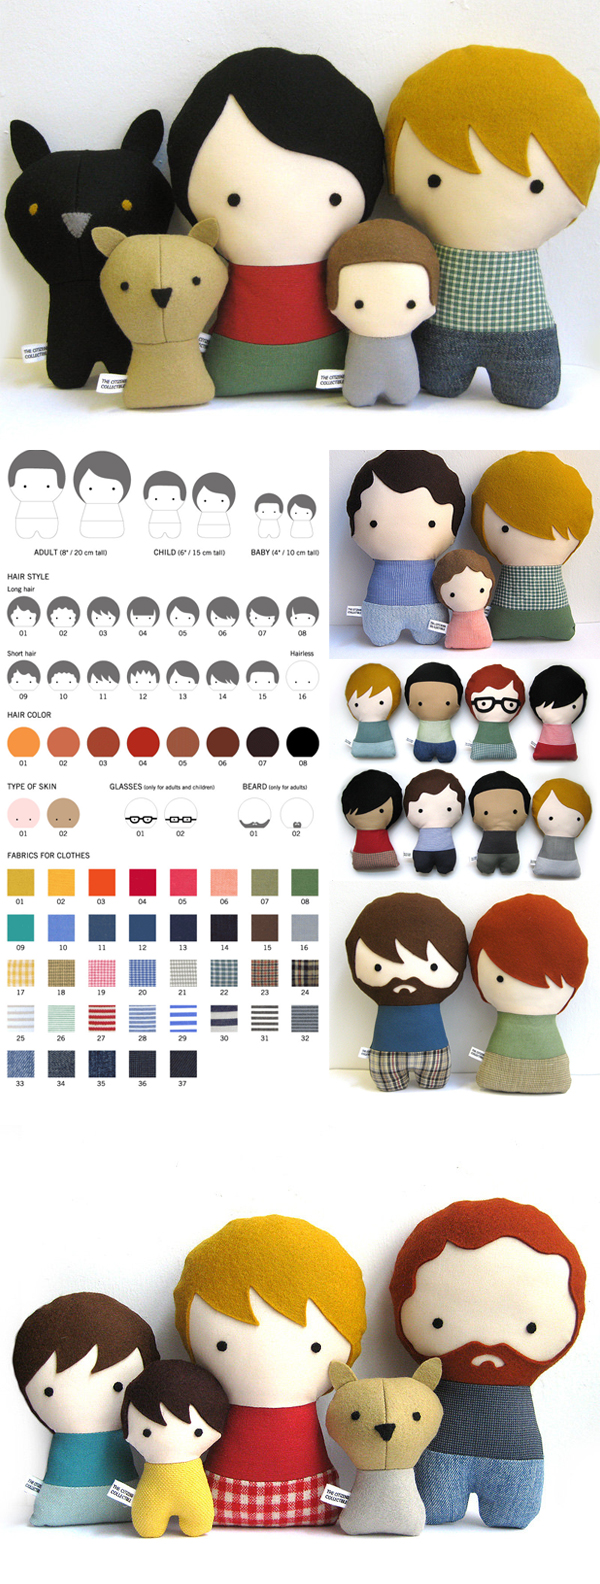 Citizens-Collectible-Dolls